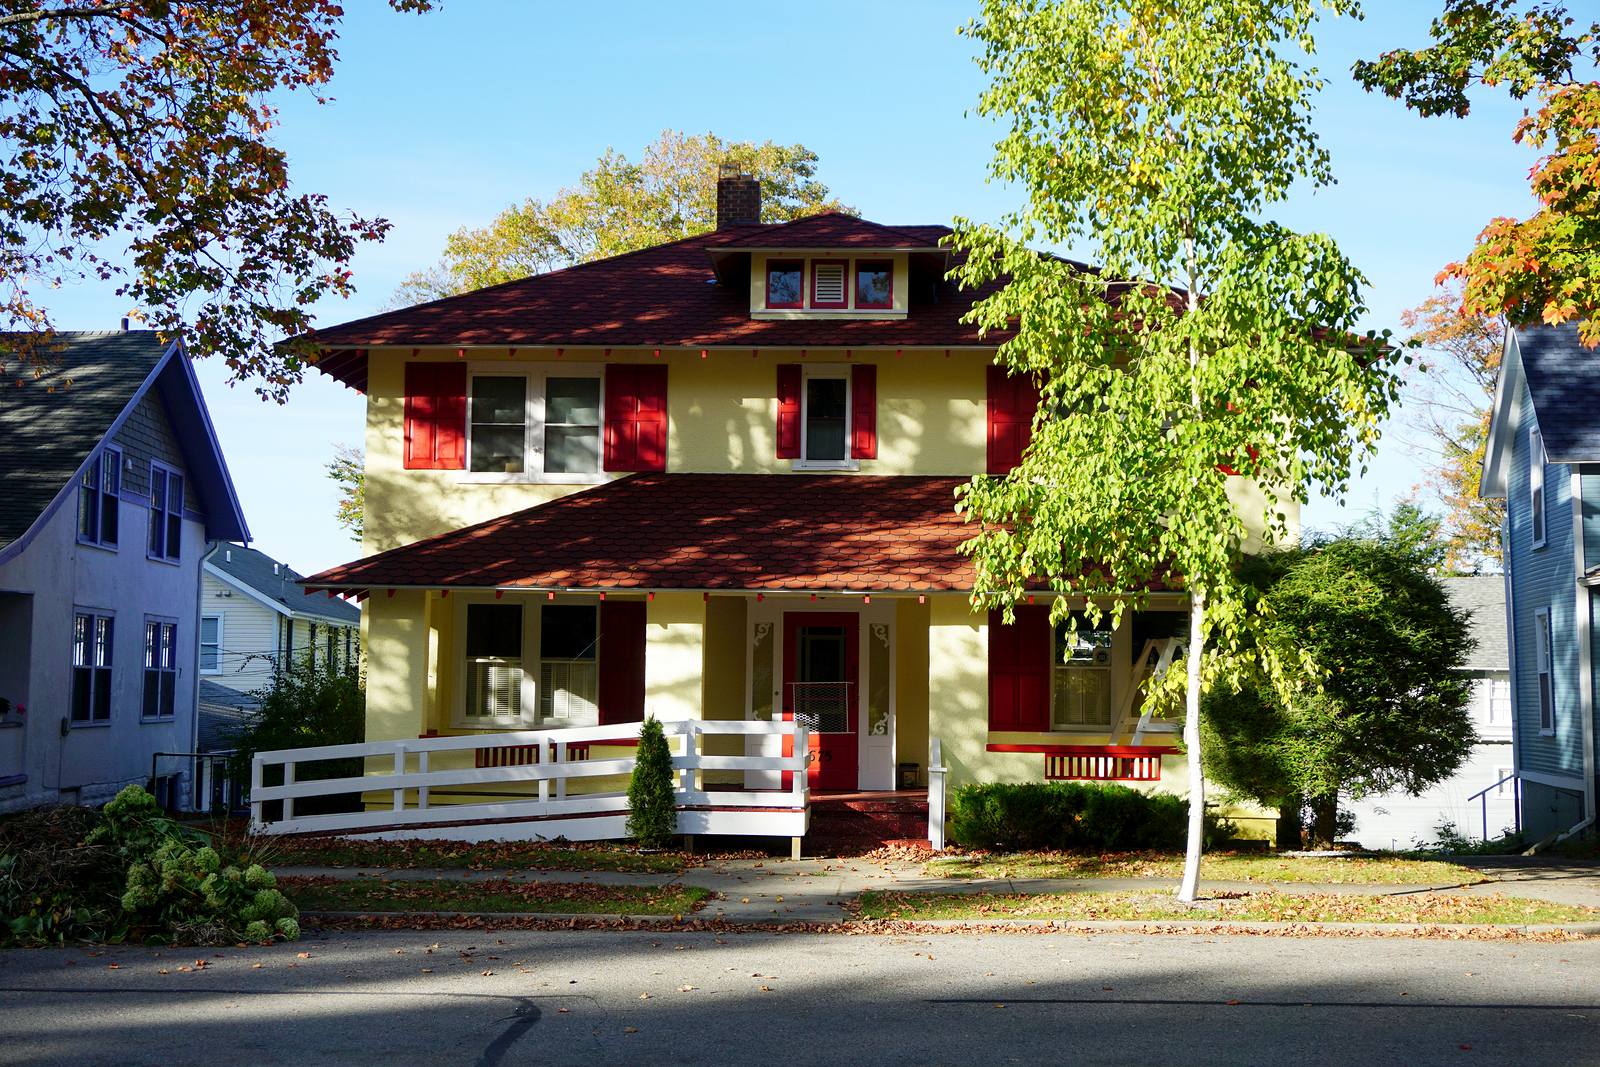 BAY VIEW, MICHIGAN / UNITED STATES - OCTOBER 17, 2017: An elegant yellow stucco summer cottage, with red trim, and a wheelchair ramp, in Bay View.